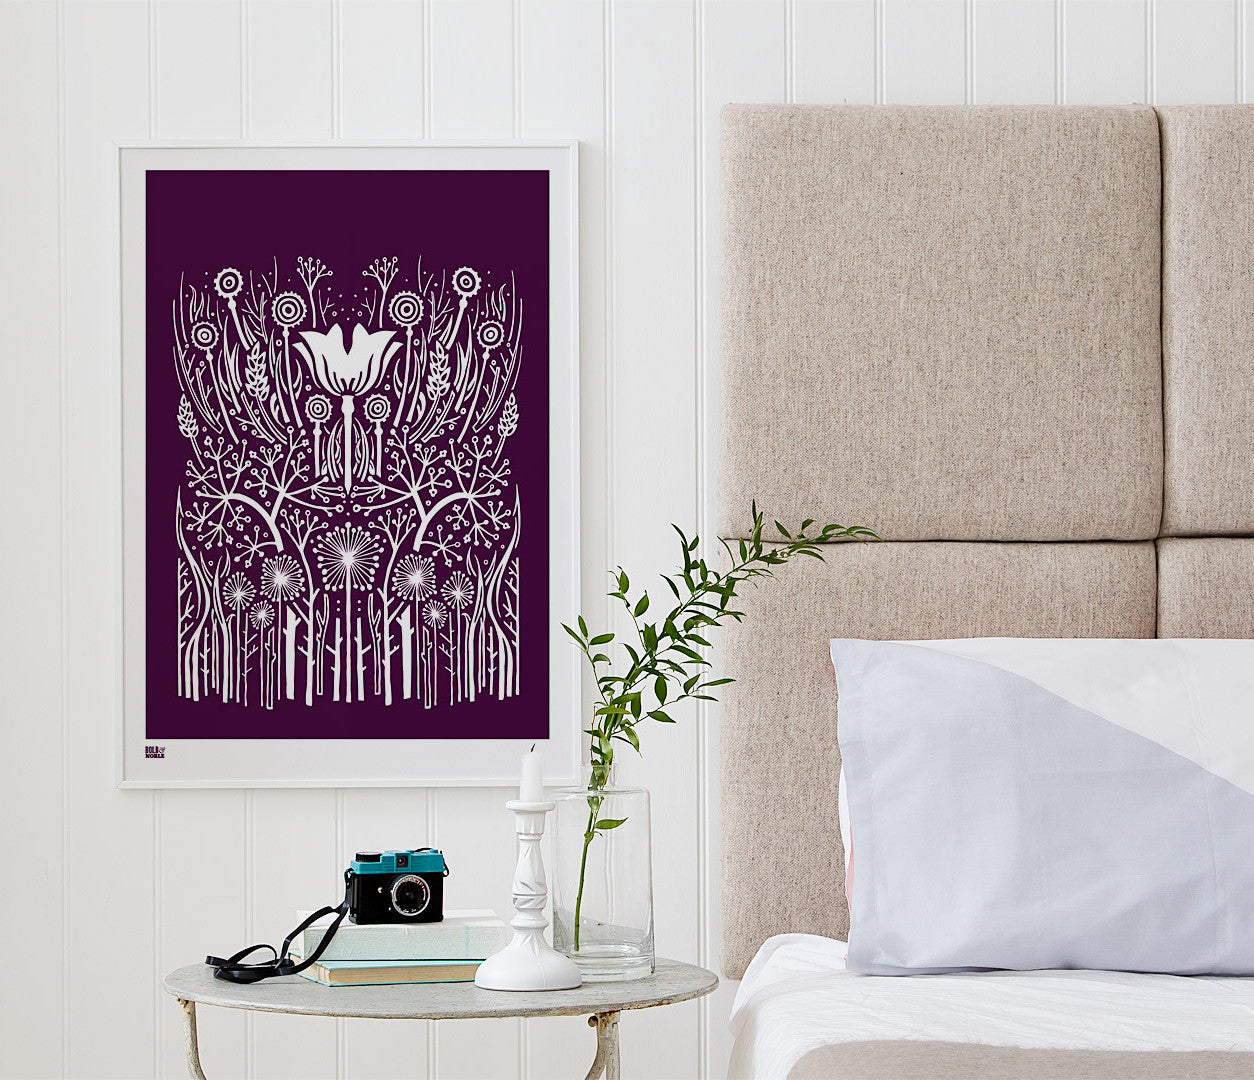 'Hedgerow' Art Print in Dark Mulberry